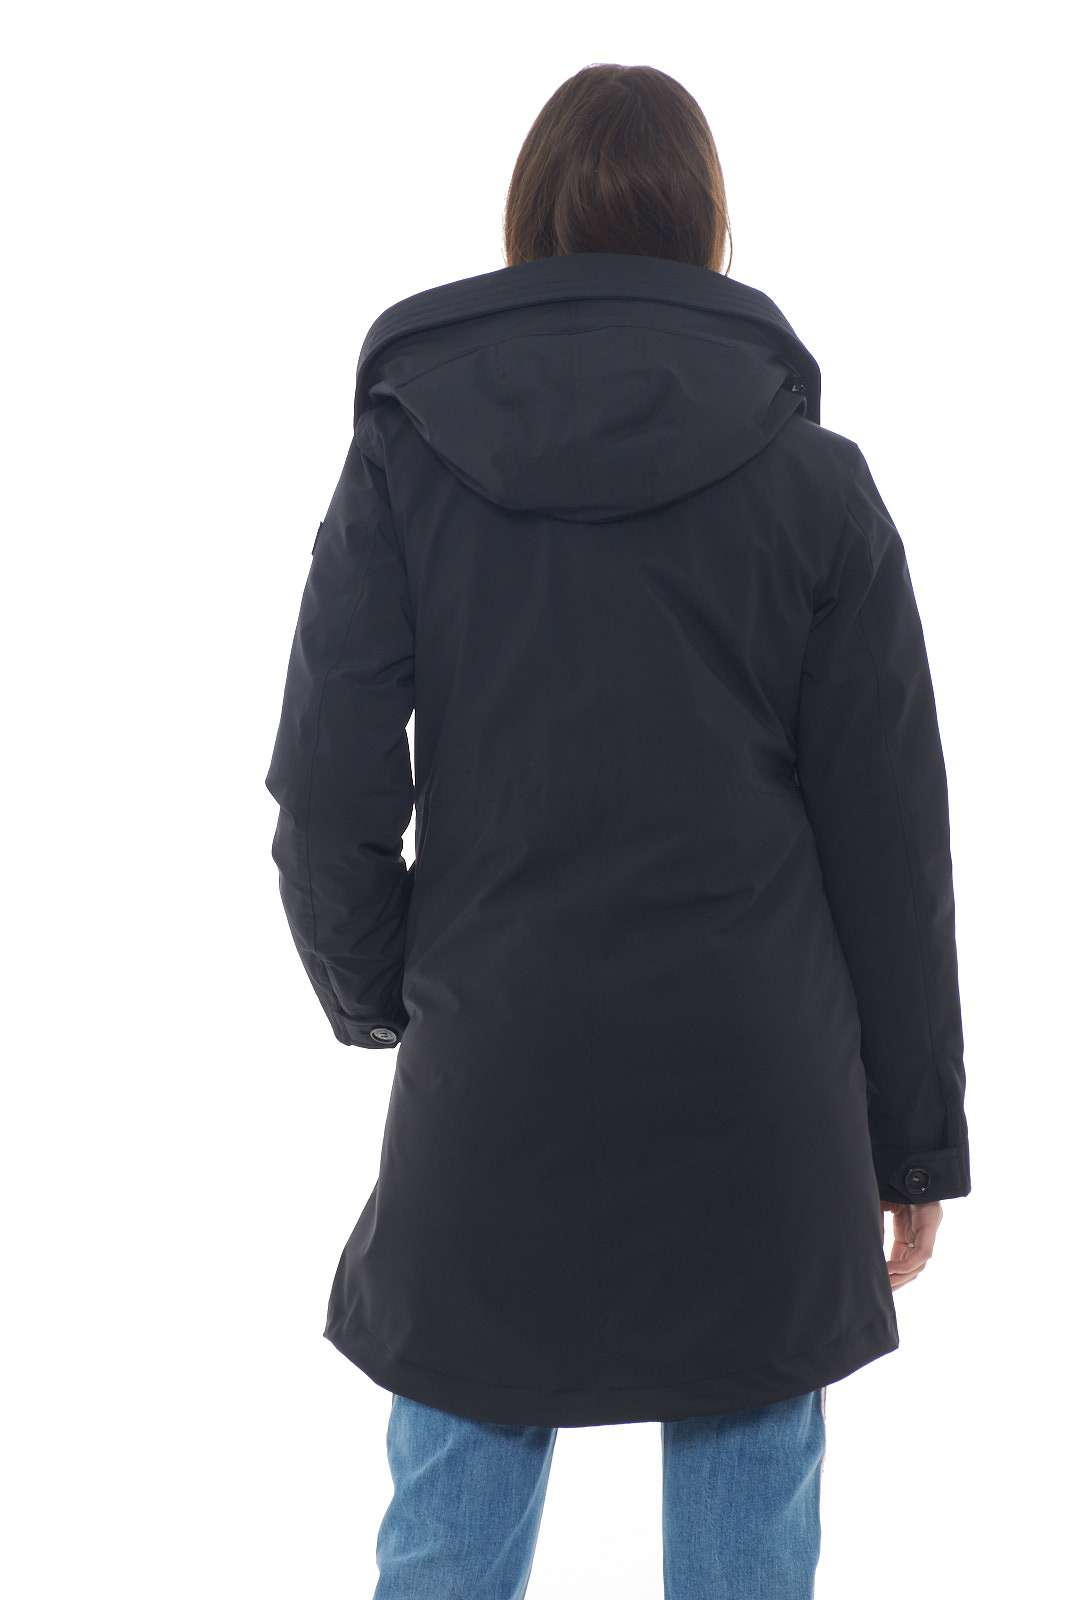 https://www.parmax.com/media/catalog/product/a/i/AI-outlet_parmax-parka-donna-Woolrich-WWCPS2785-C.jpg